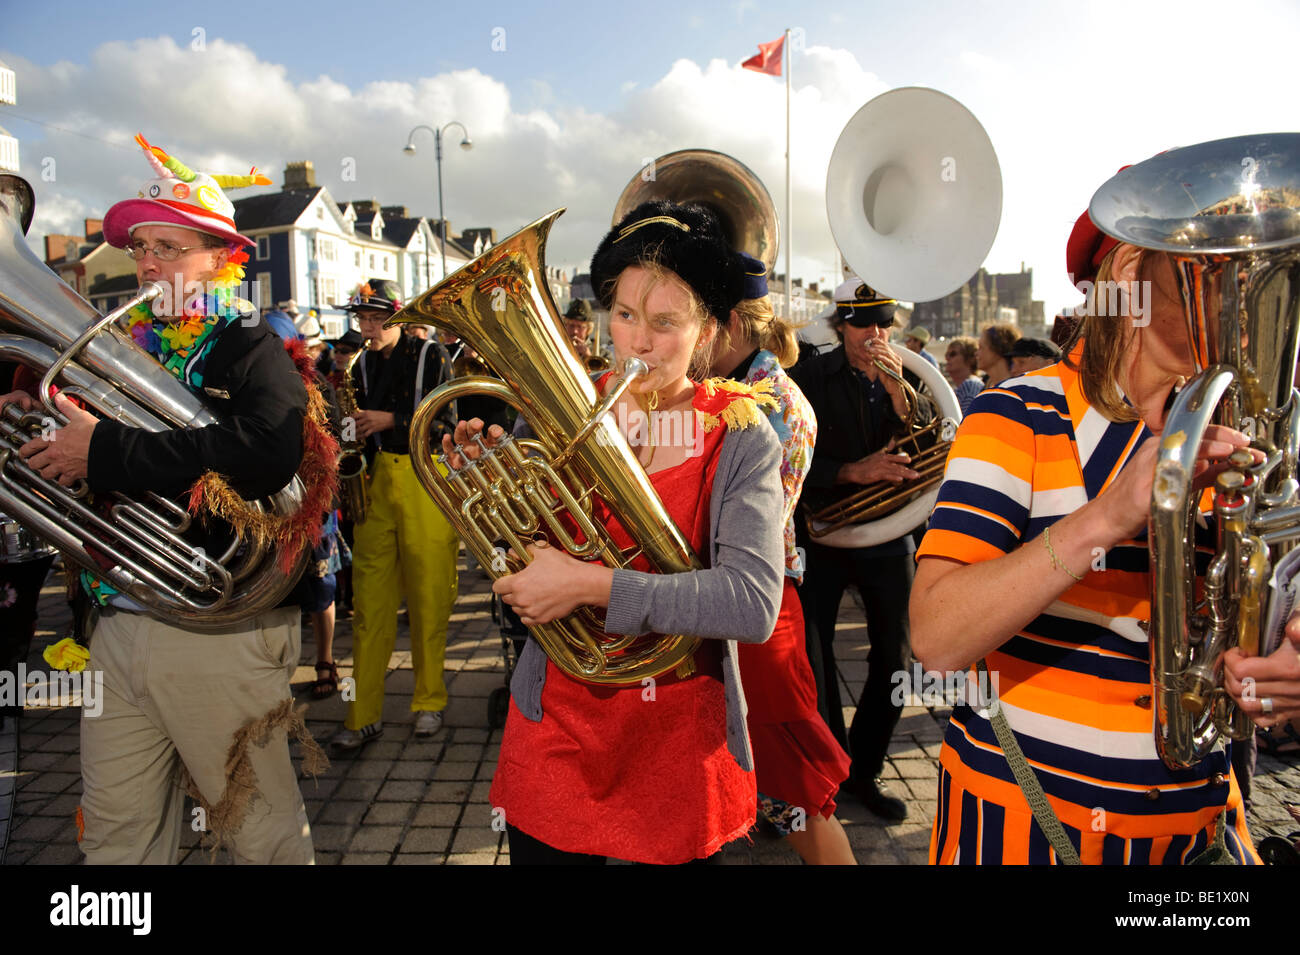 Musicians in the De Propere Fanfare belgian marching band performing on the promenade, Aberystwyth Wales UK - Stock Image